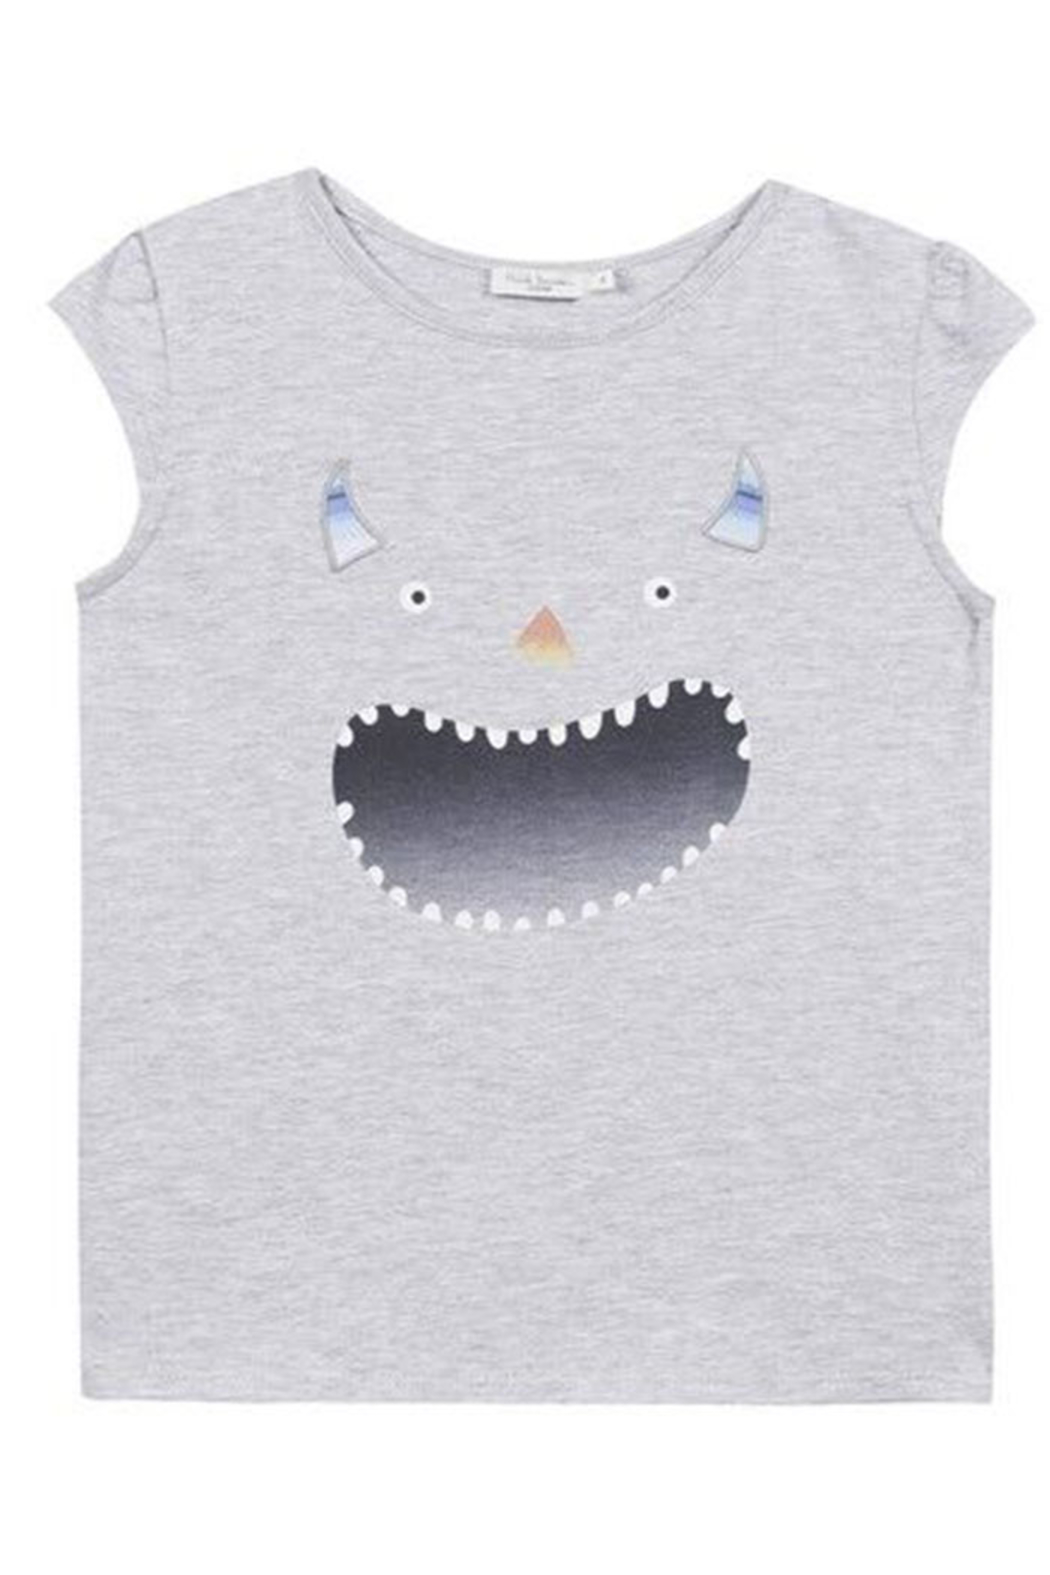 Paul Smith 8-14 Years Monster Shirt - Main Image